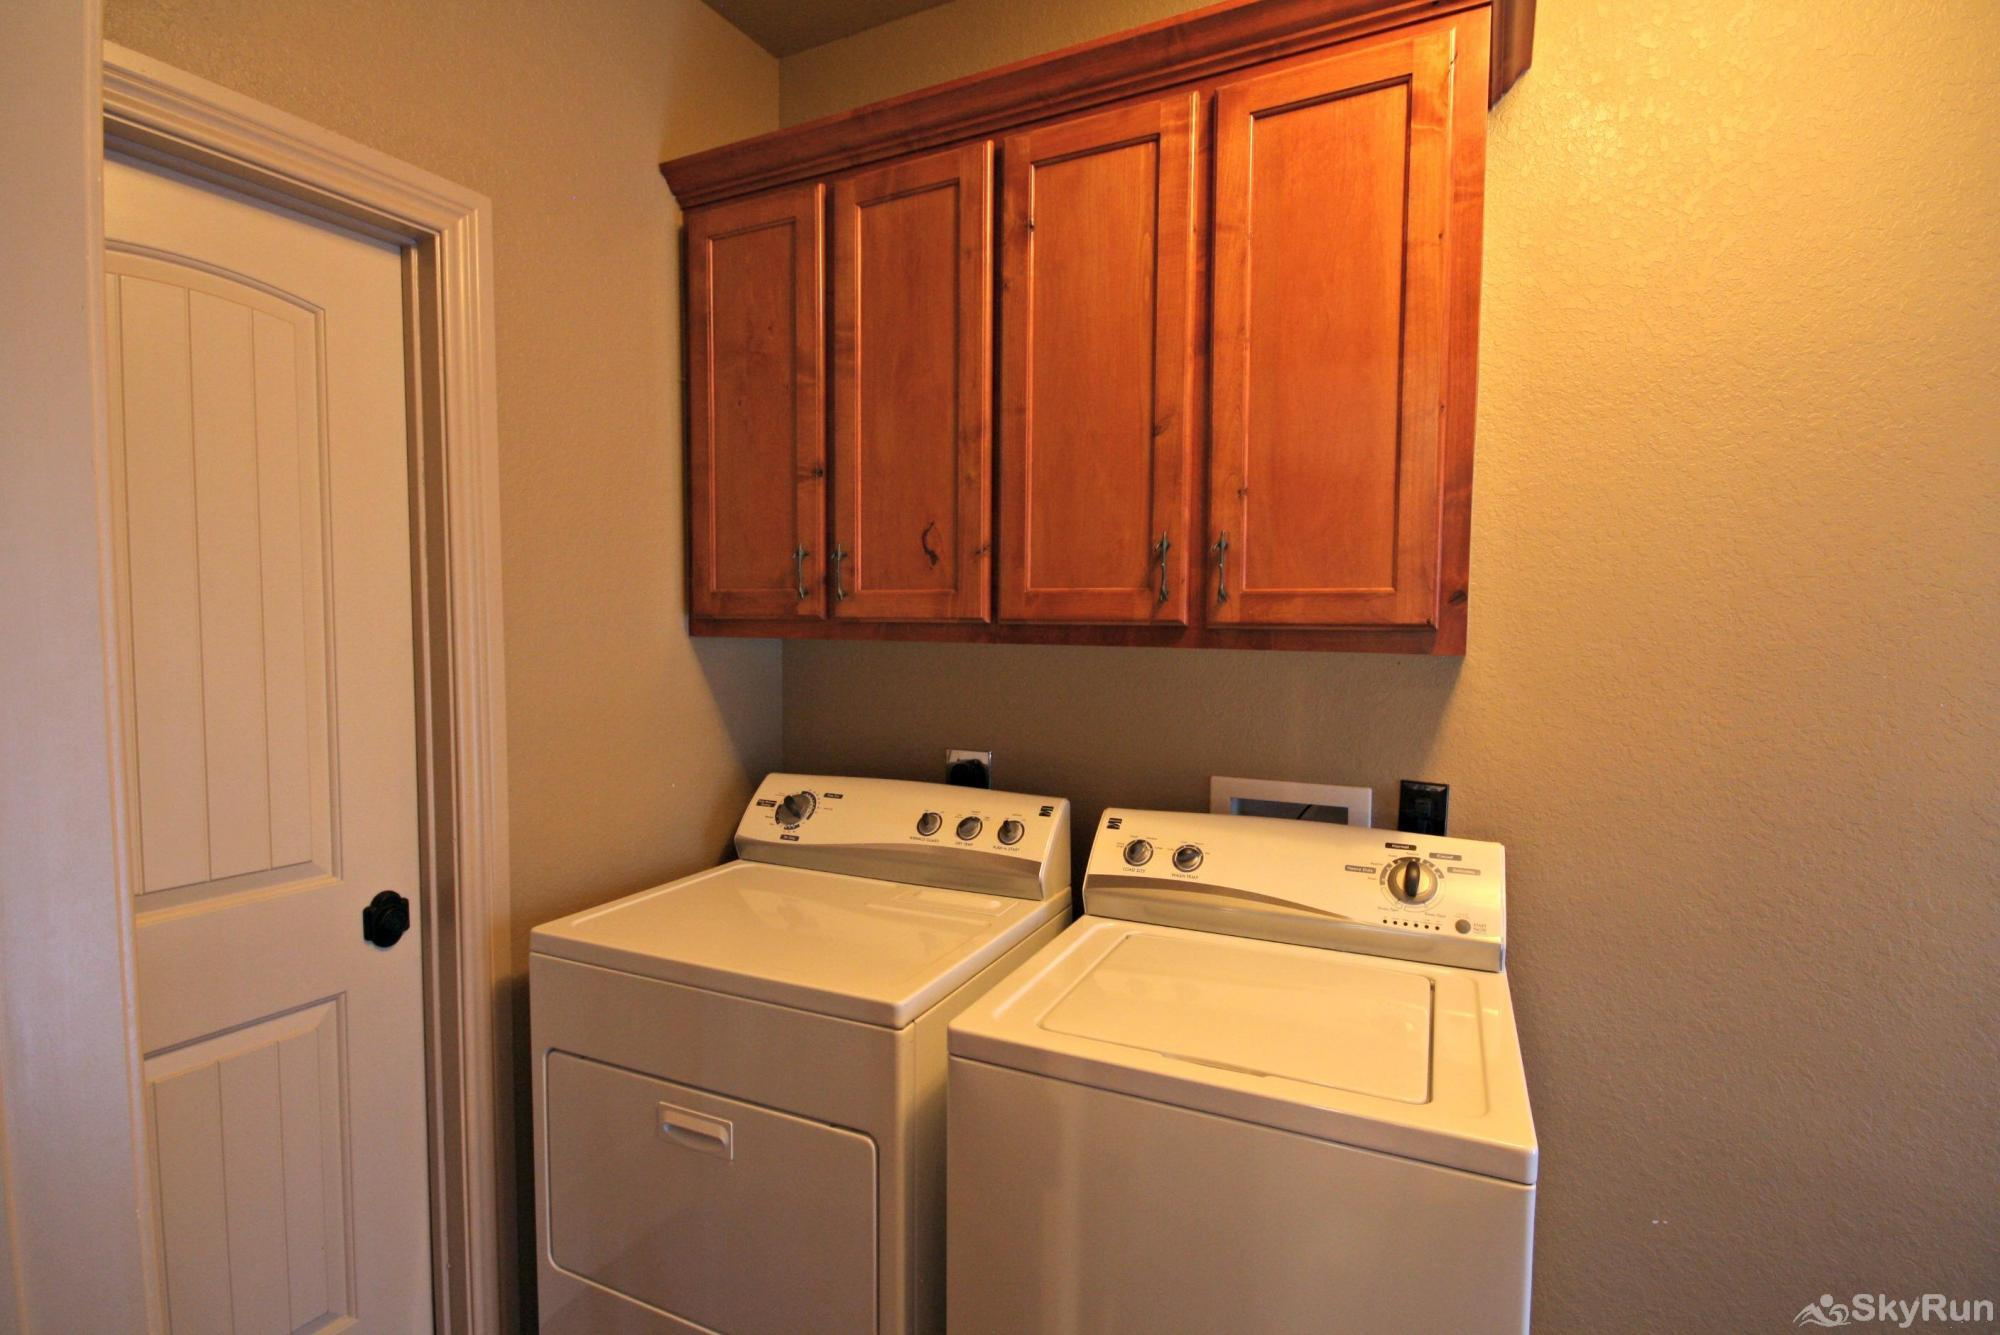 CANYON LAKE HIDEAWAY Laundry Room Available for Guest Use